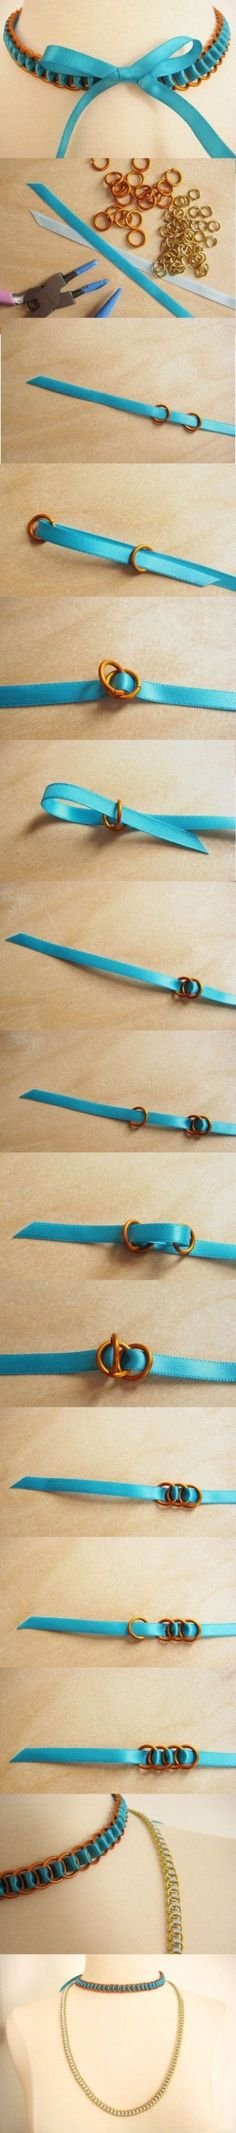 Notes: DIY Fashion Necklace